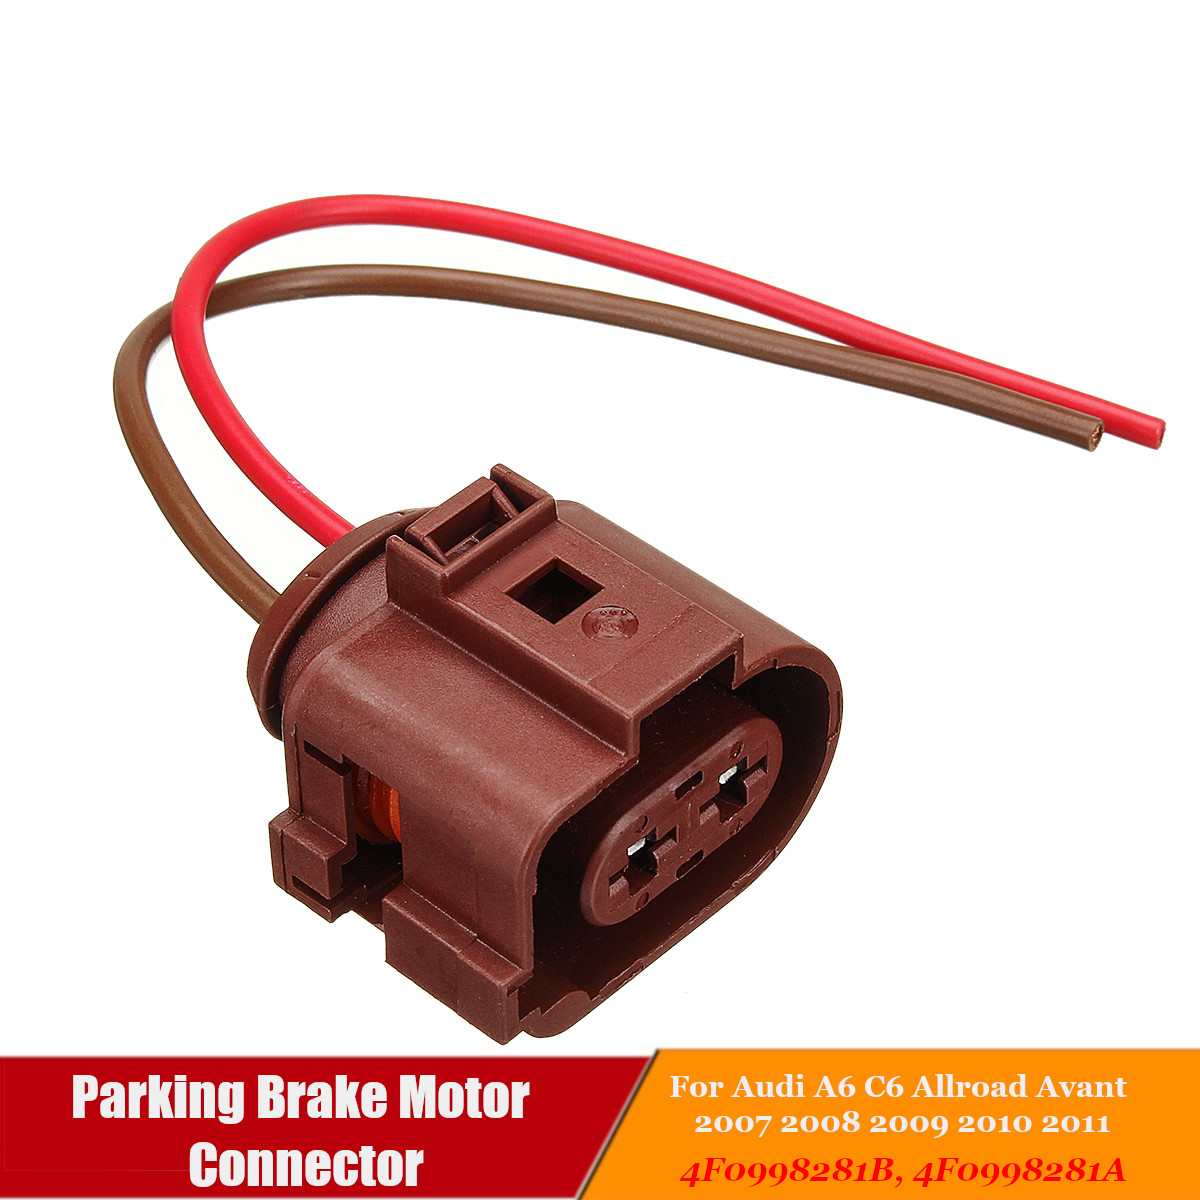 4f0998281b car parking brake motor wiring harness connector for audi a6 c6 allroad avant 2007  [ 1200 x 1200 Pixel ]